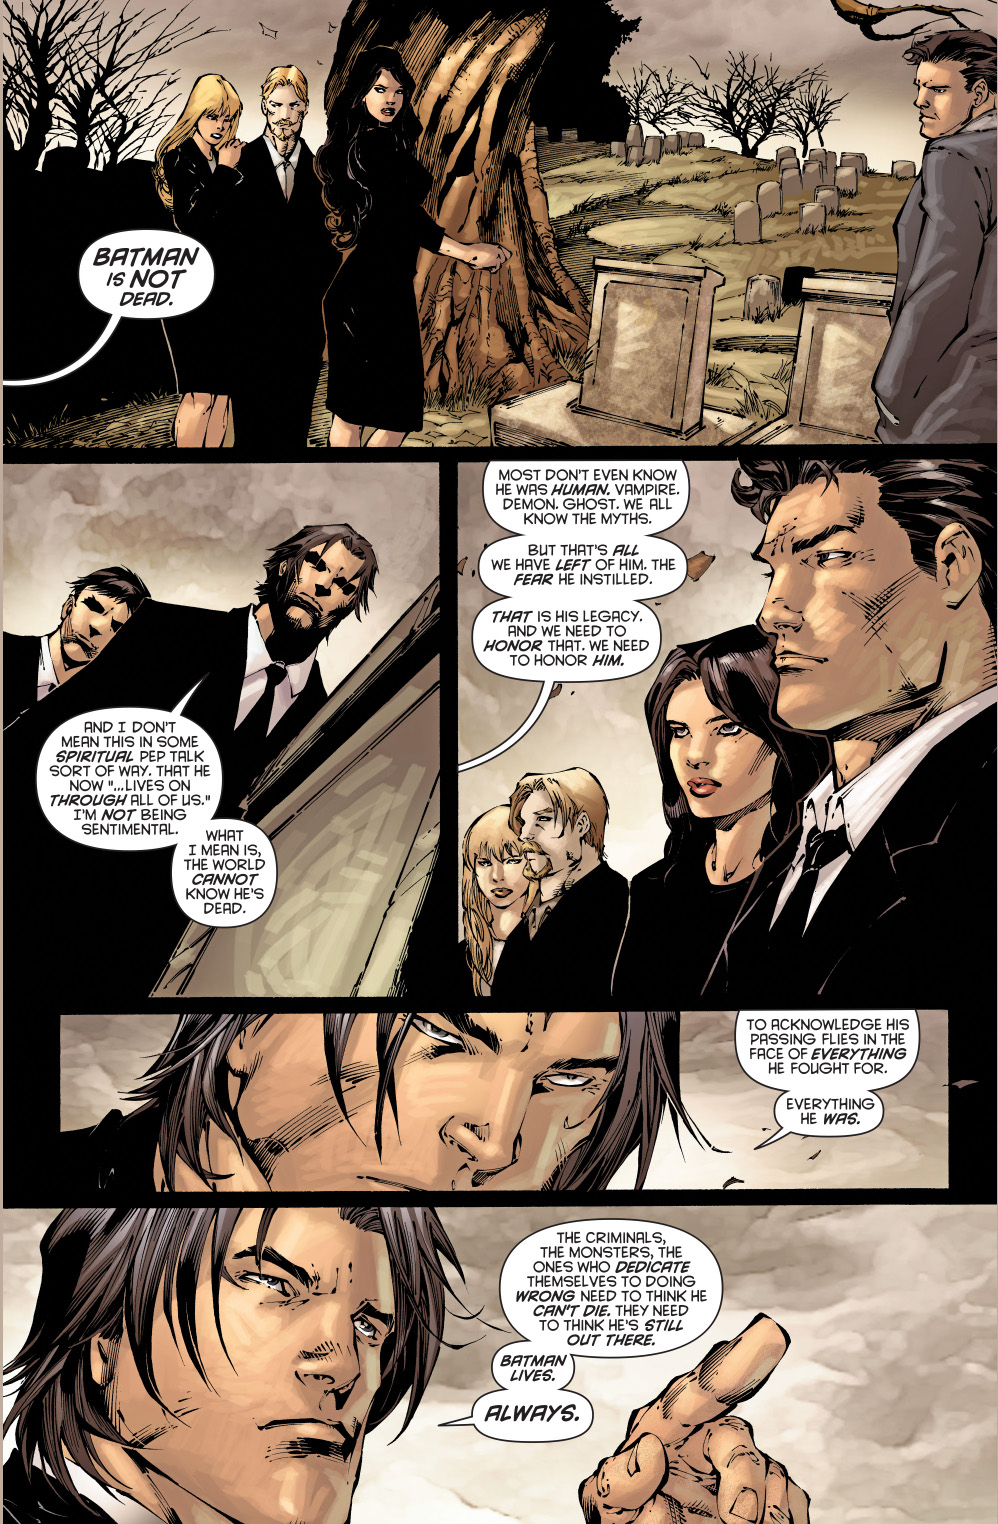 dick grayson's eulogy for batman